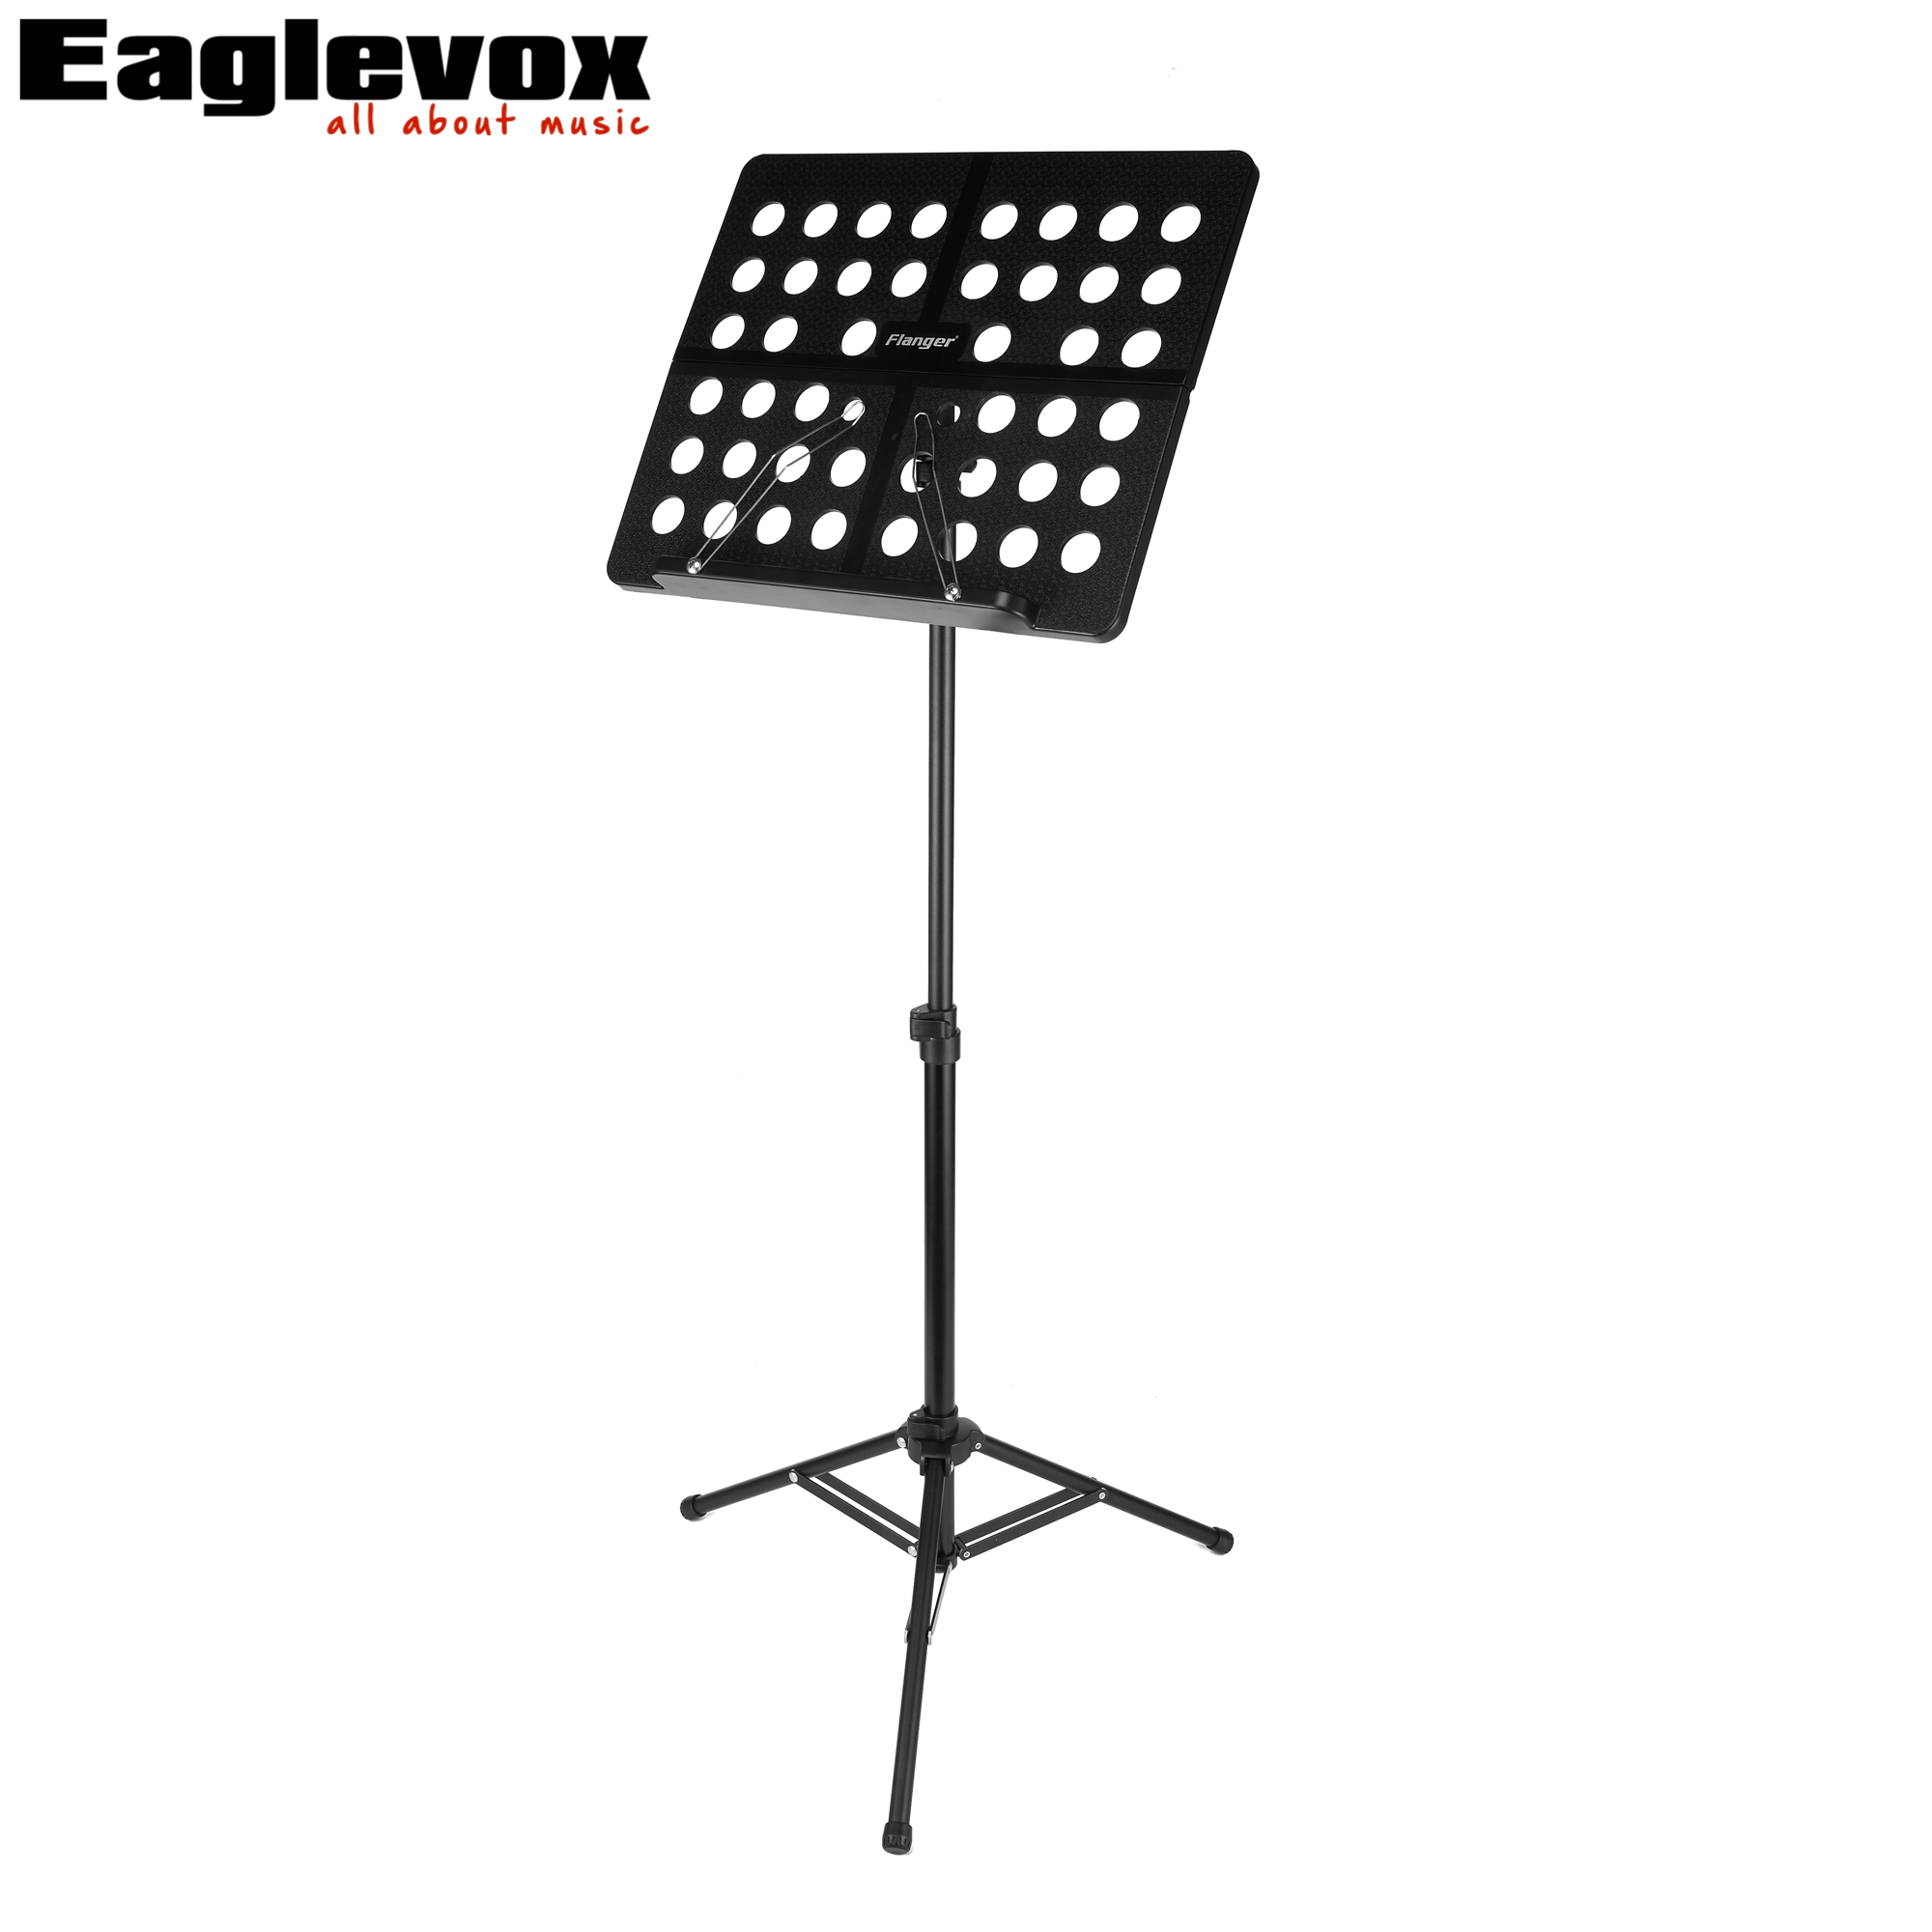 Folding Adjustable Black Music Stand for Sheet Music Portable Metal Holder 70-145 cm Adjustable Height with Carrying Pad Bag colourful sheet folding music stand metal tripod stand holder with soft case with carrying bag free shipping wholesales